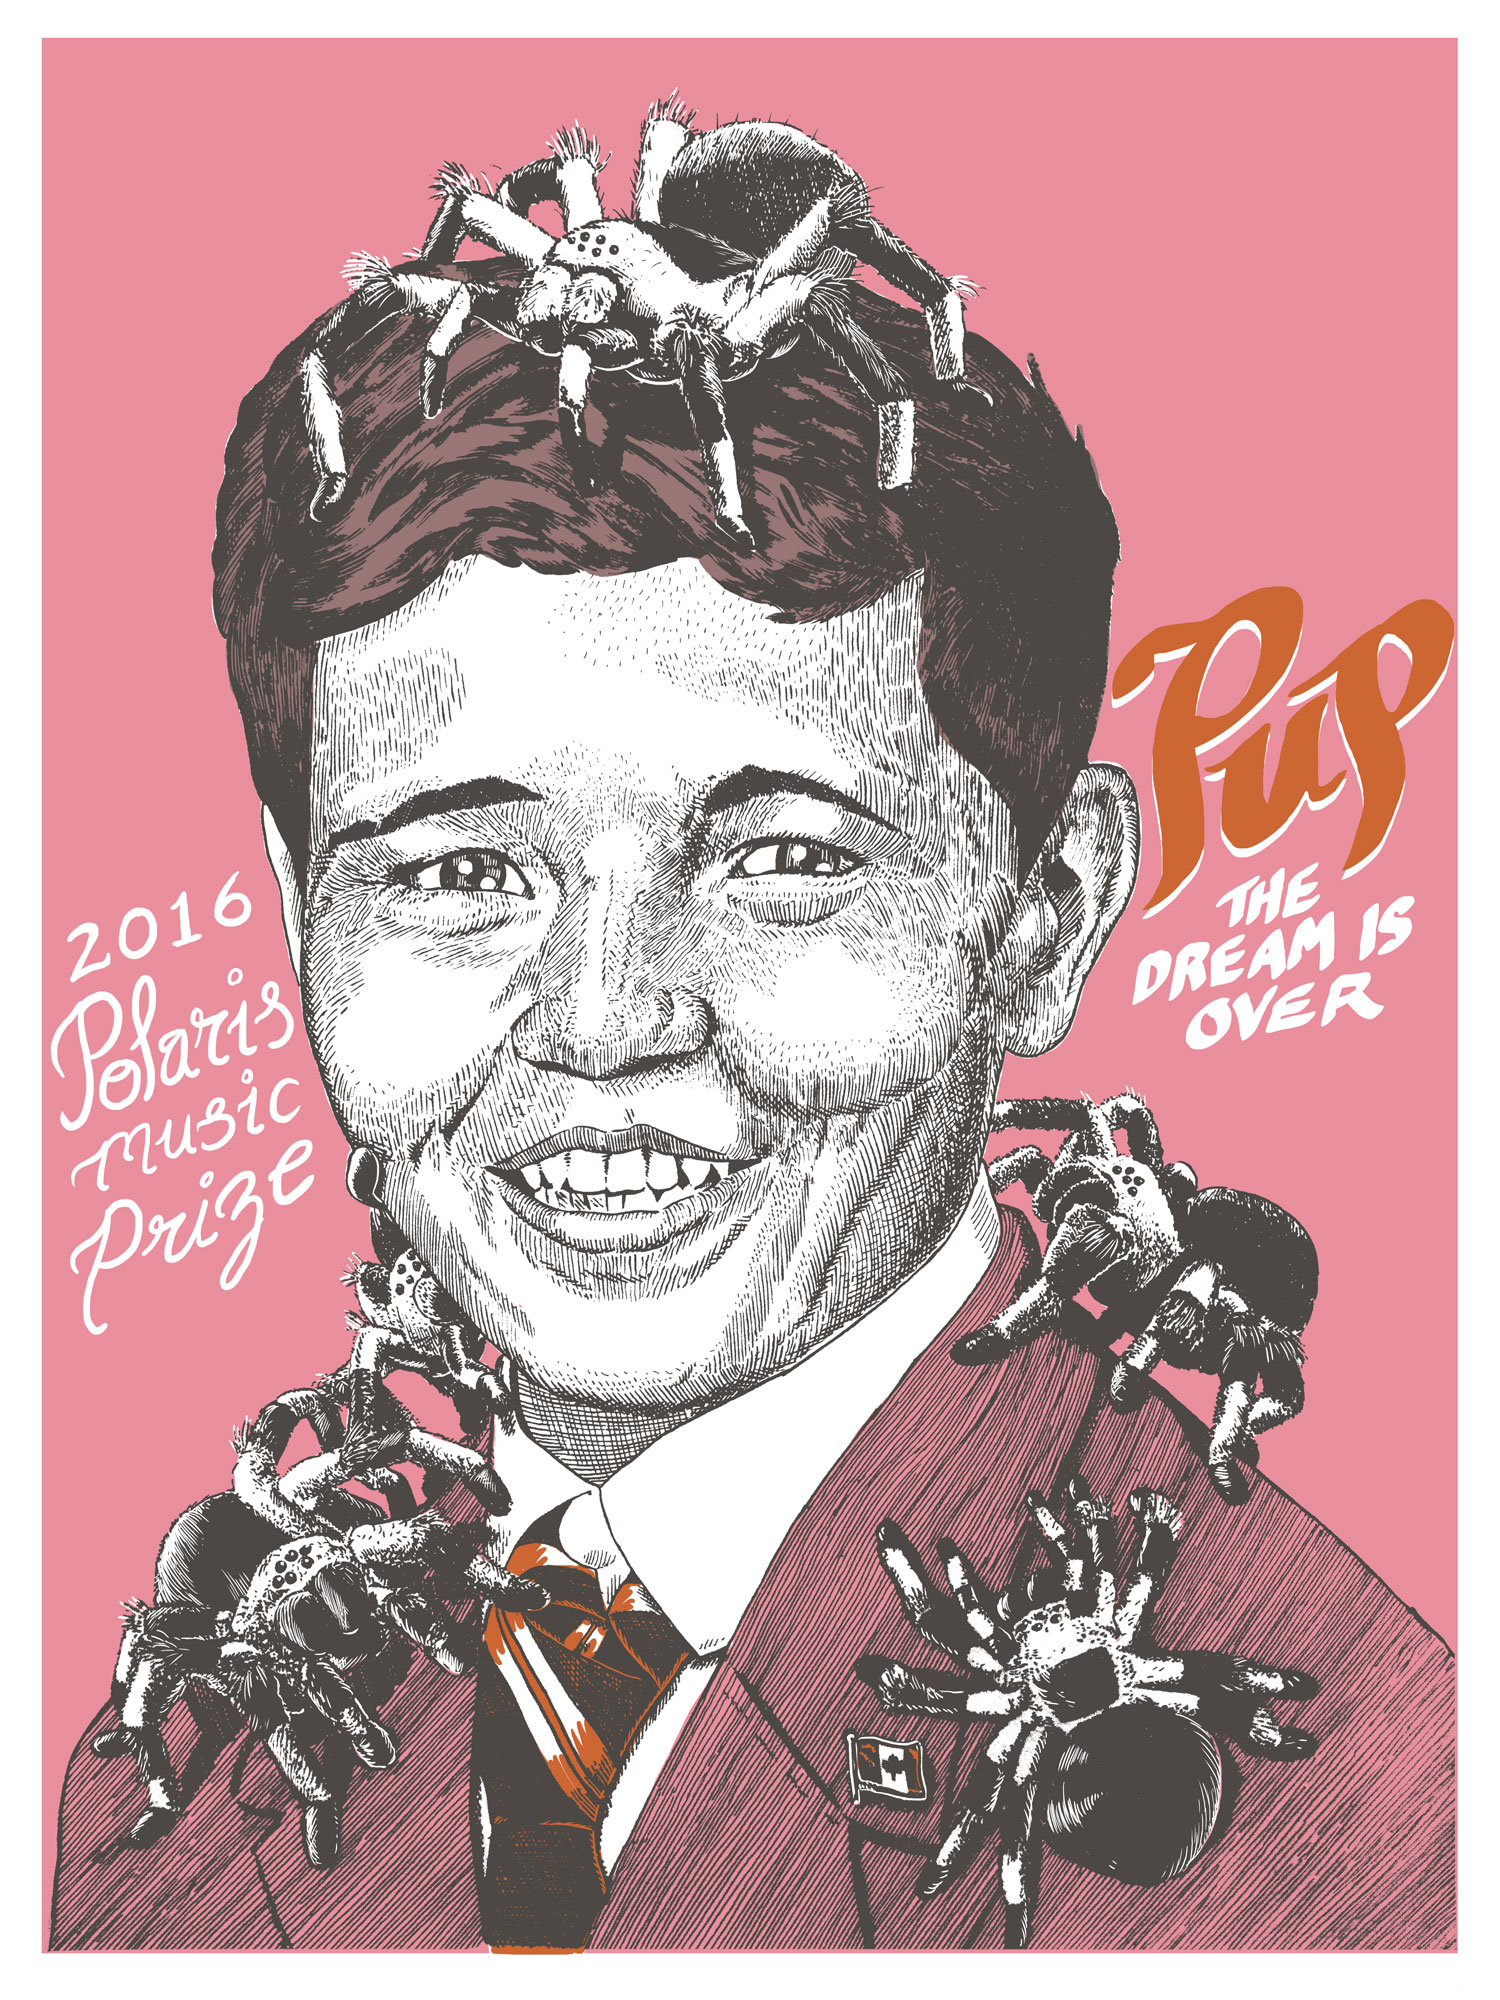 """This poster promoting PUP's performance at the 2016 Polaris Music Prize Gala depicts an adolescent boy dressed in an old fashioned suit. The boy is smiling while four tarantullas are crawling on his shoulders and head. The style of the poster is reminiscent of adverts from the 1940s and 1950s. The background of the poster is pink. On the left side of the poster the words """"2016 Polaris Music Prize"""" appear in white letters. On the right side of the image the word """"PUP"""" appears in dark orange color next to the words """"The Dream is Over"""" written in white letters. The letters on the poster are written with a cursive font."""